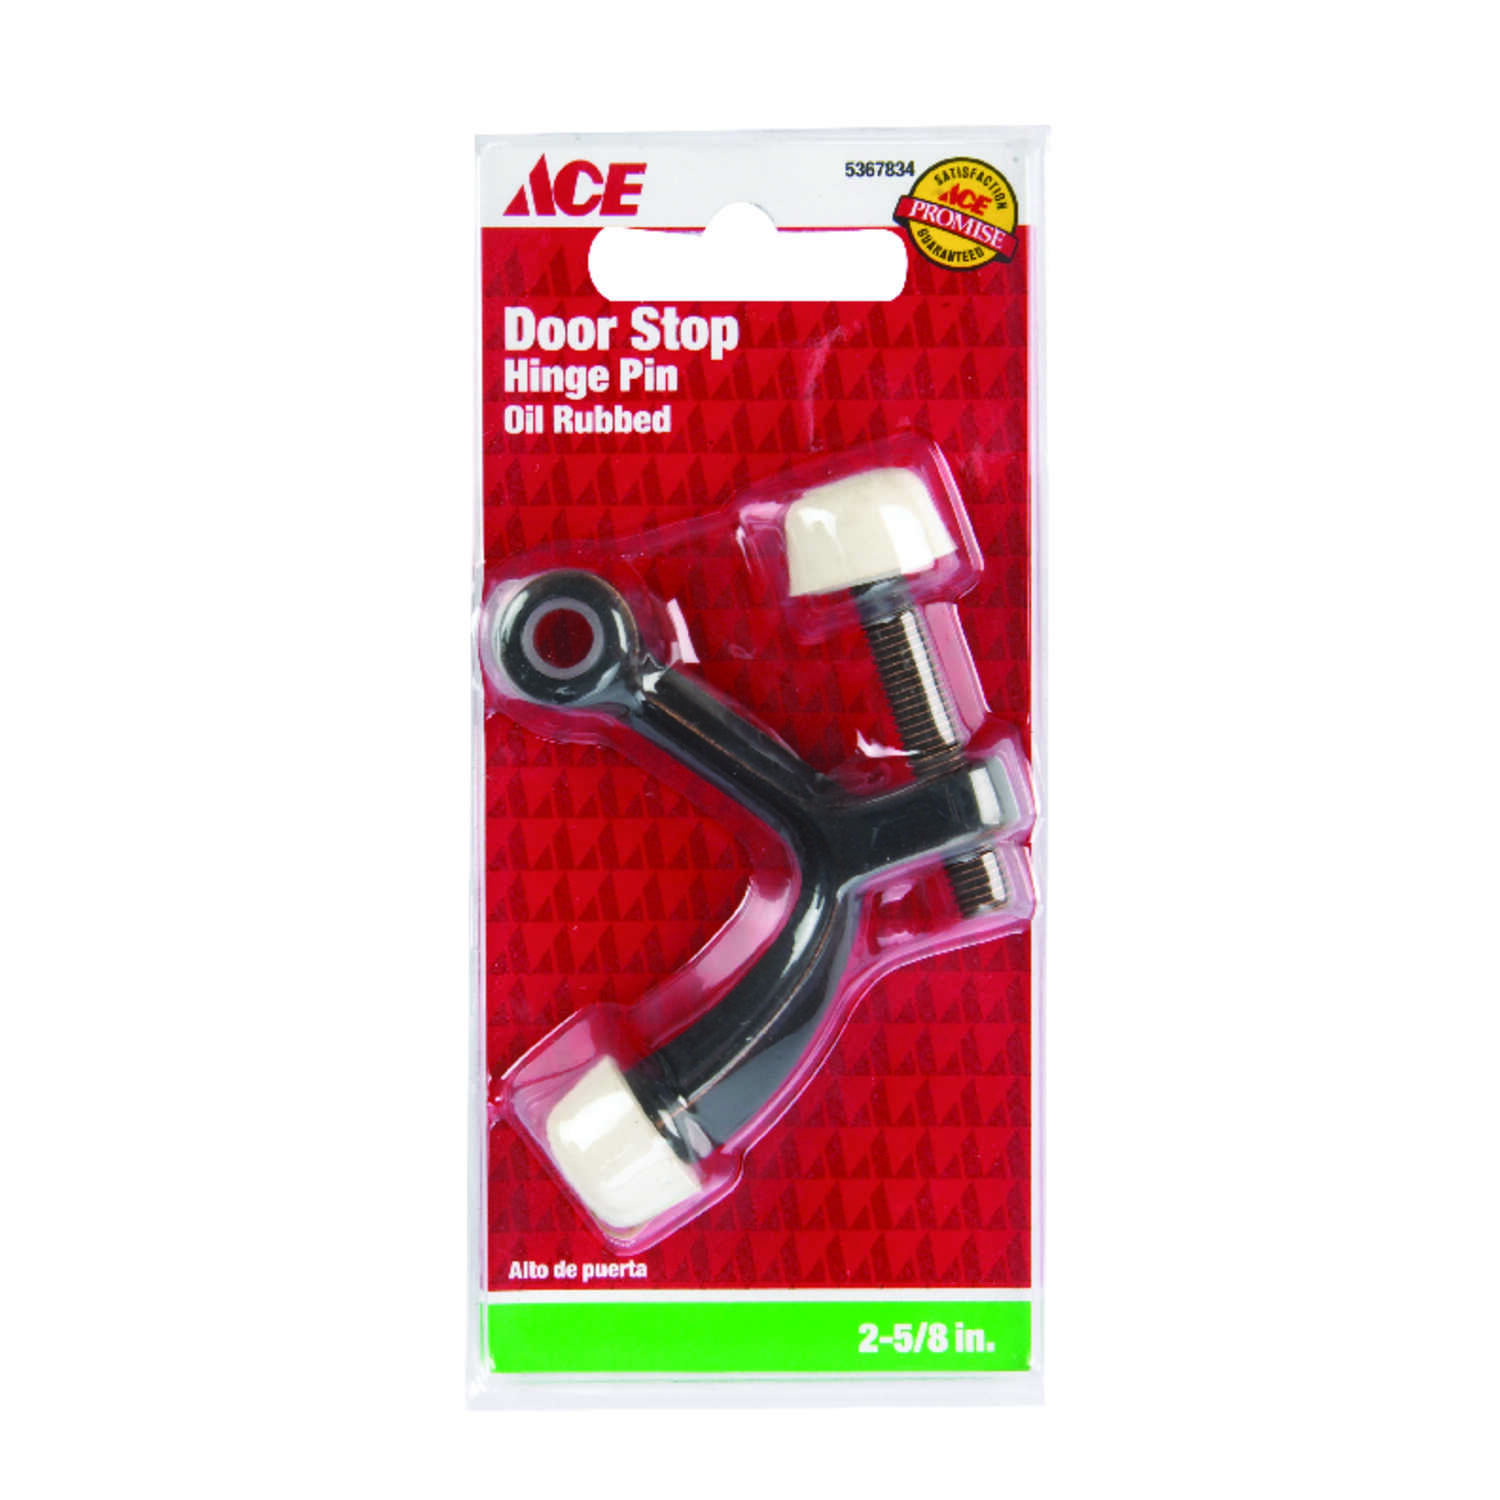 Ace  1.6 in. H x 2-5/8 in. W Metal  Bronze  Oil Rubbed Bronze  Hinge Pin Door Stop  Mounts to door a